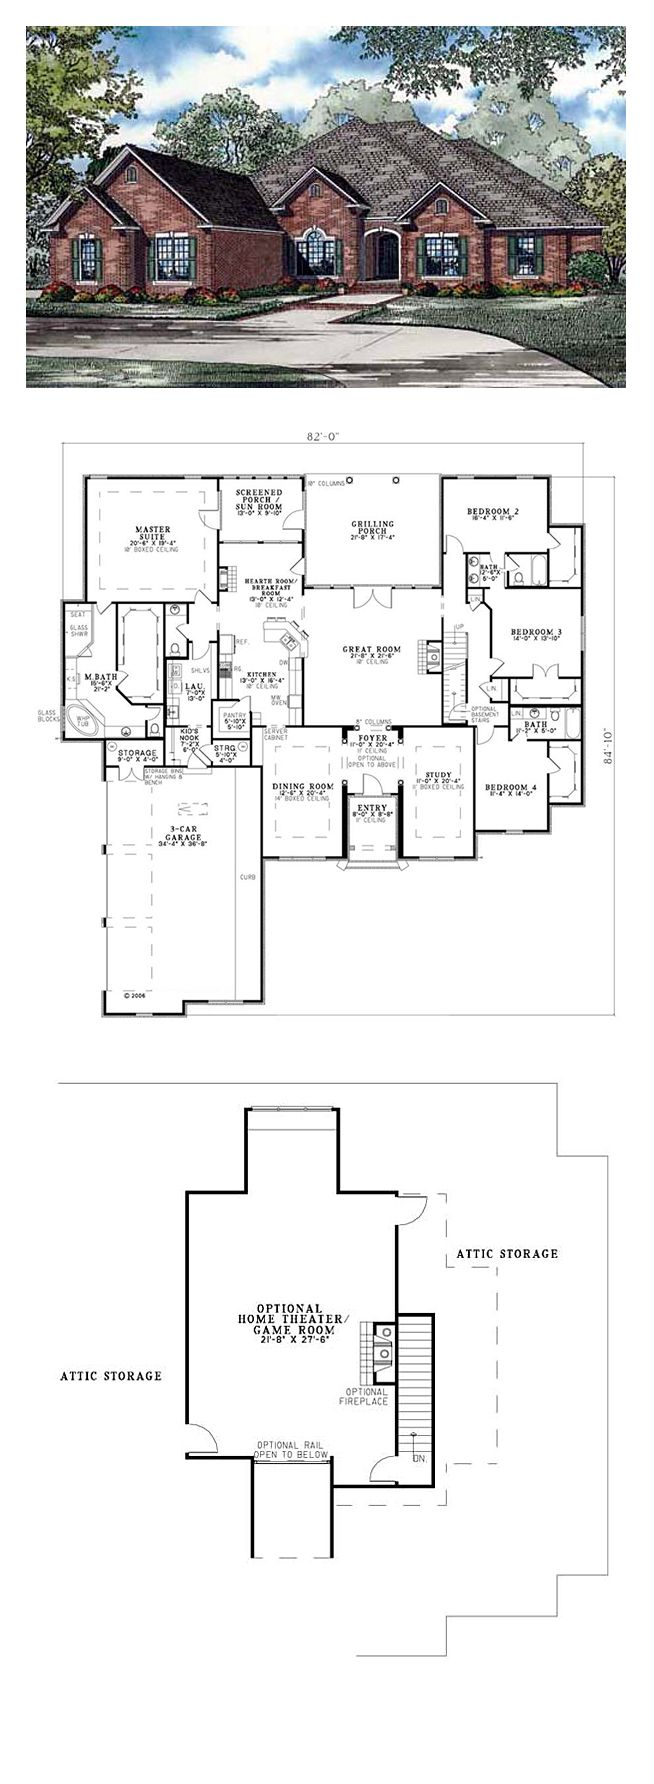 COOL House Plan ID chp 38313 Total